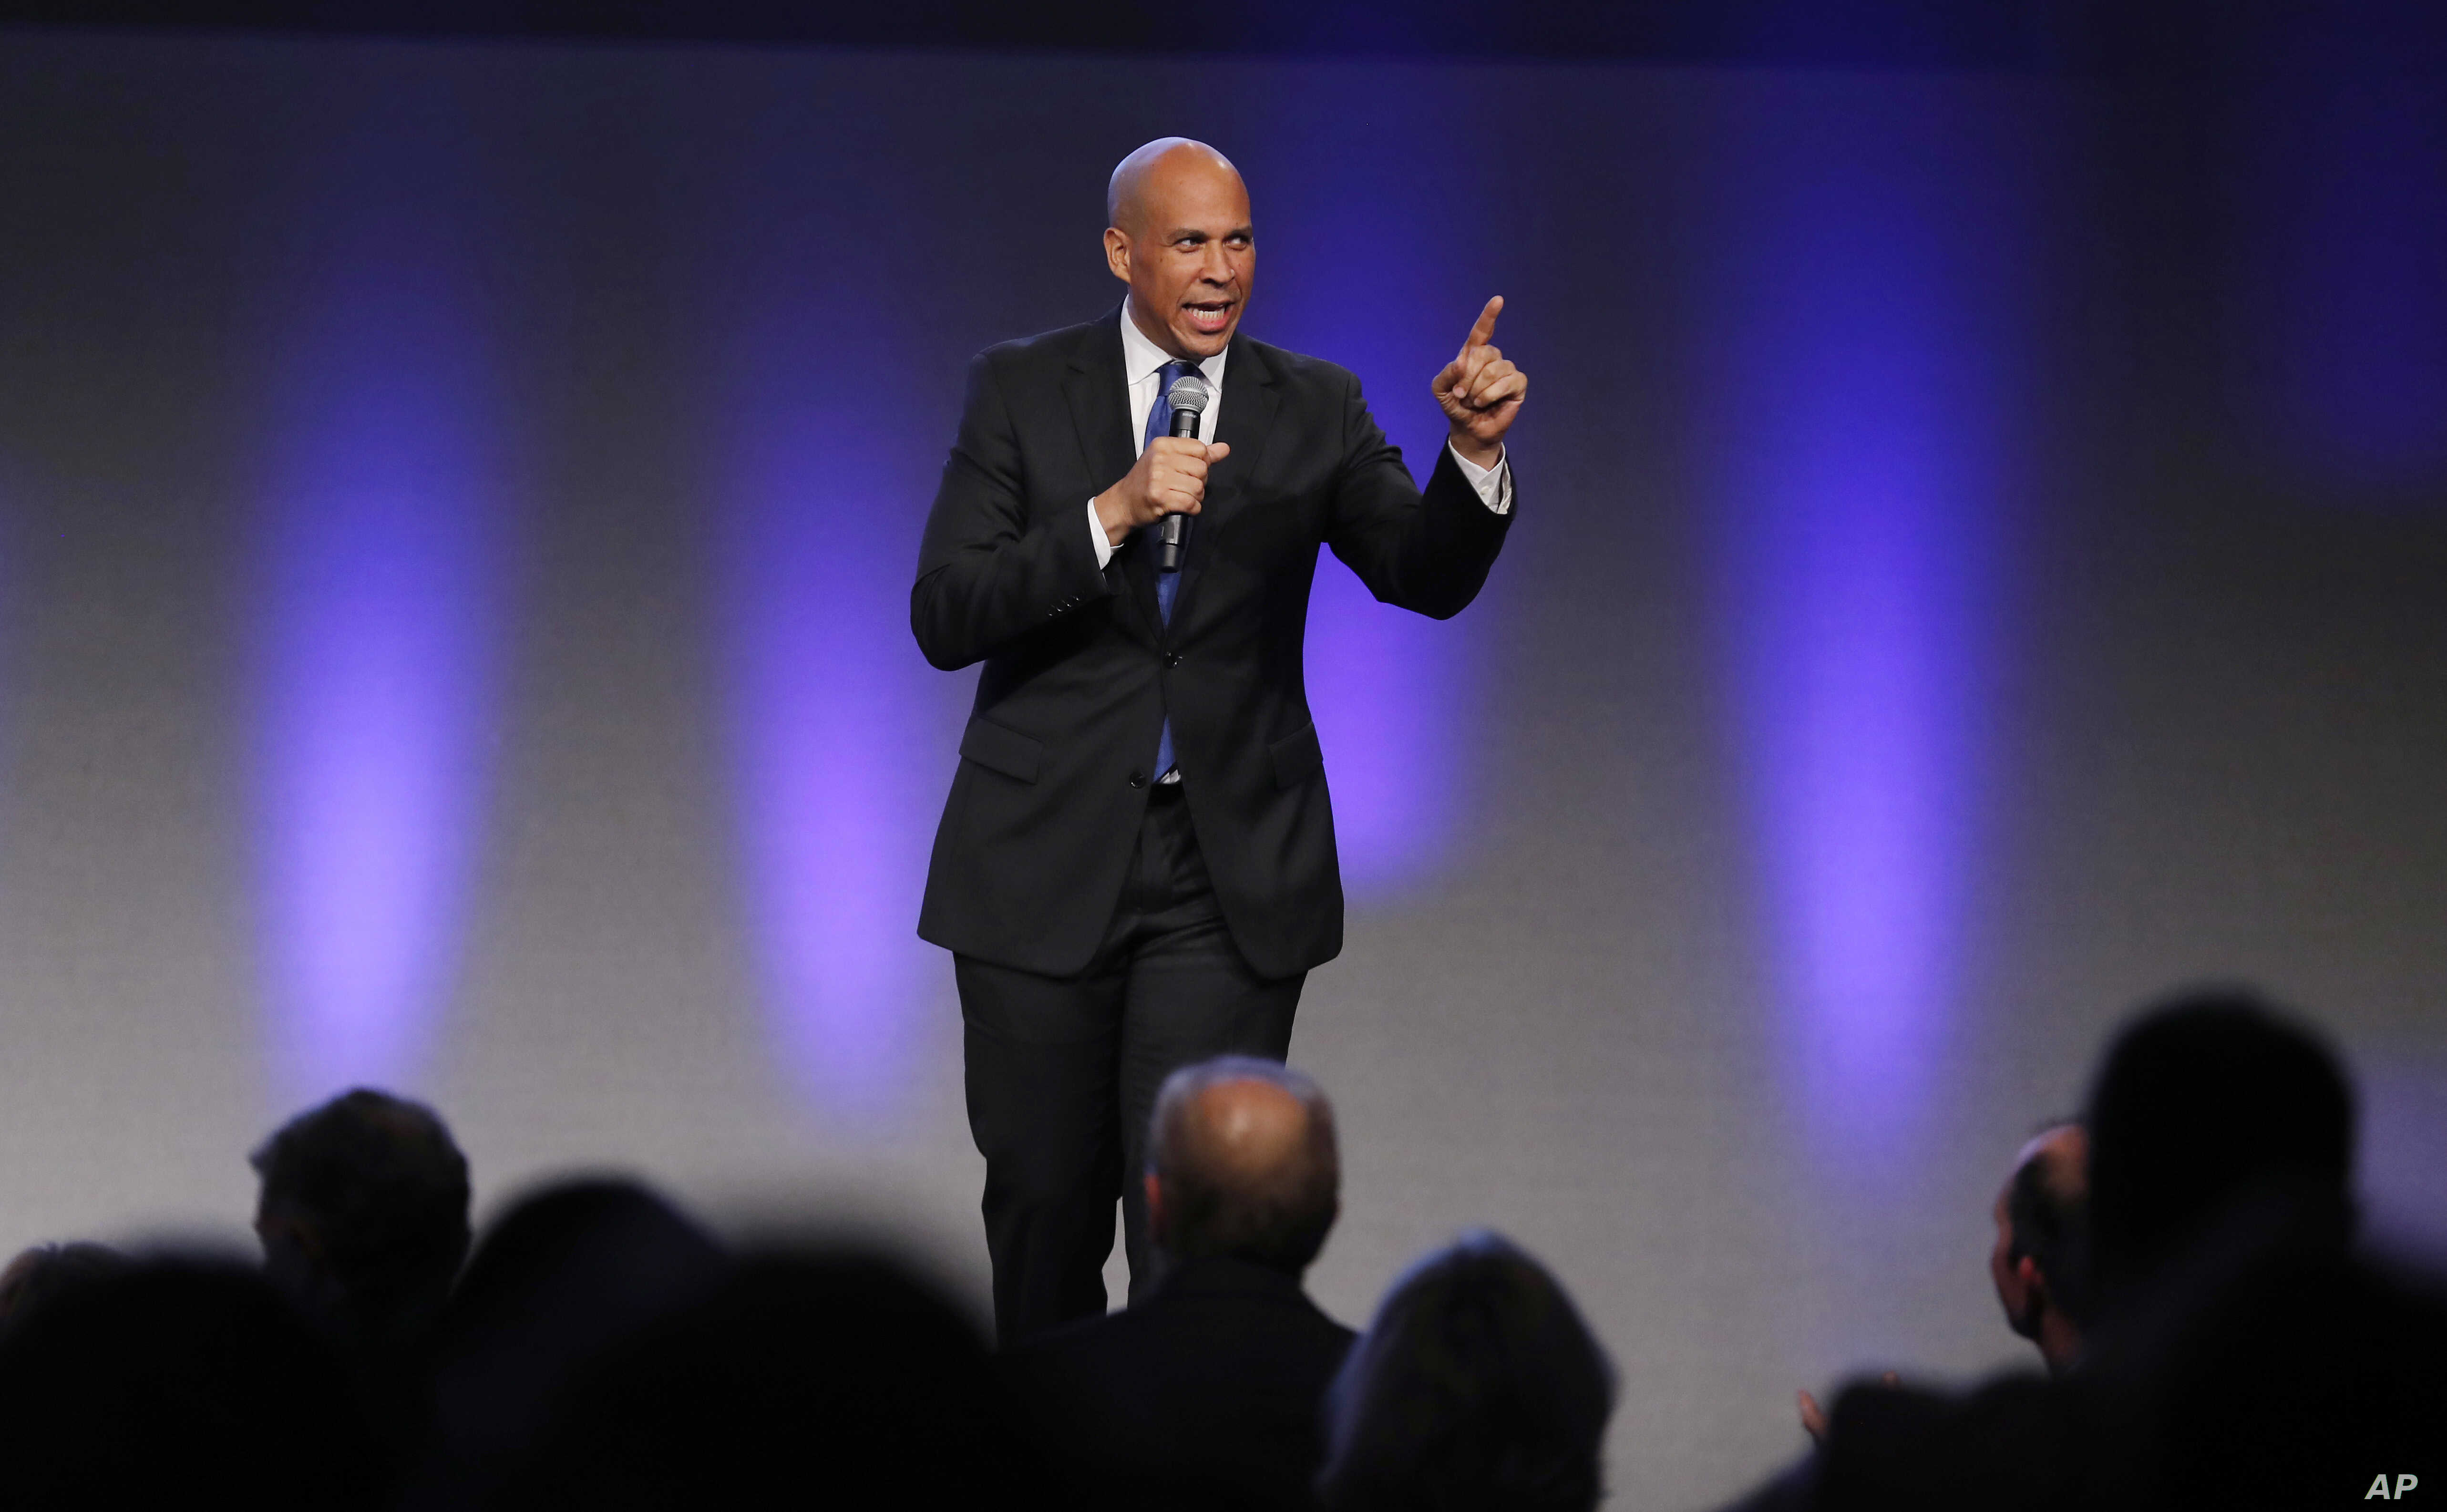 U.S. Sen. Cory Booker, D-N.J., speaks during the Iowa Democratic Party's annual Fall Gala in Des Moines, Iowa, Oct. 6, 2018.